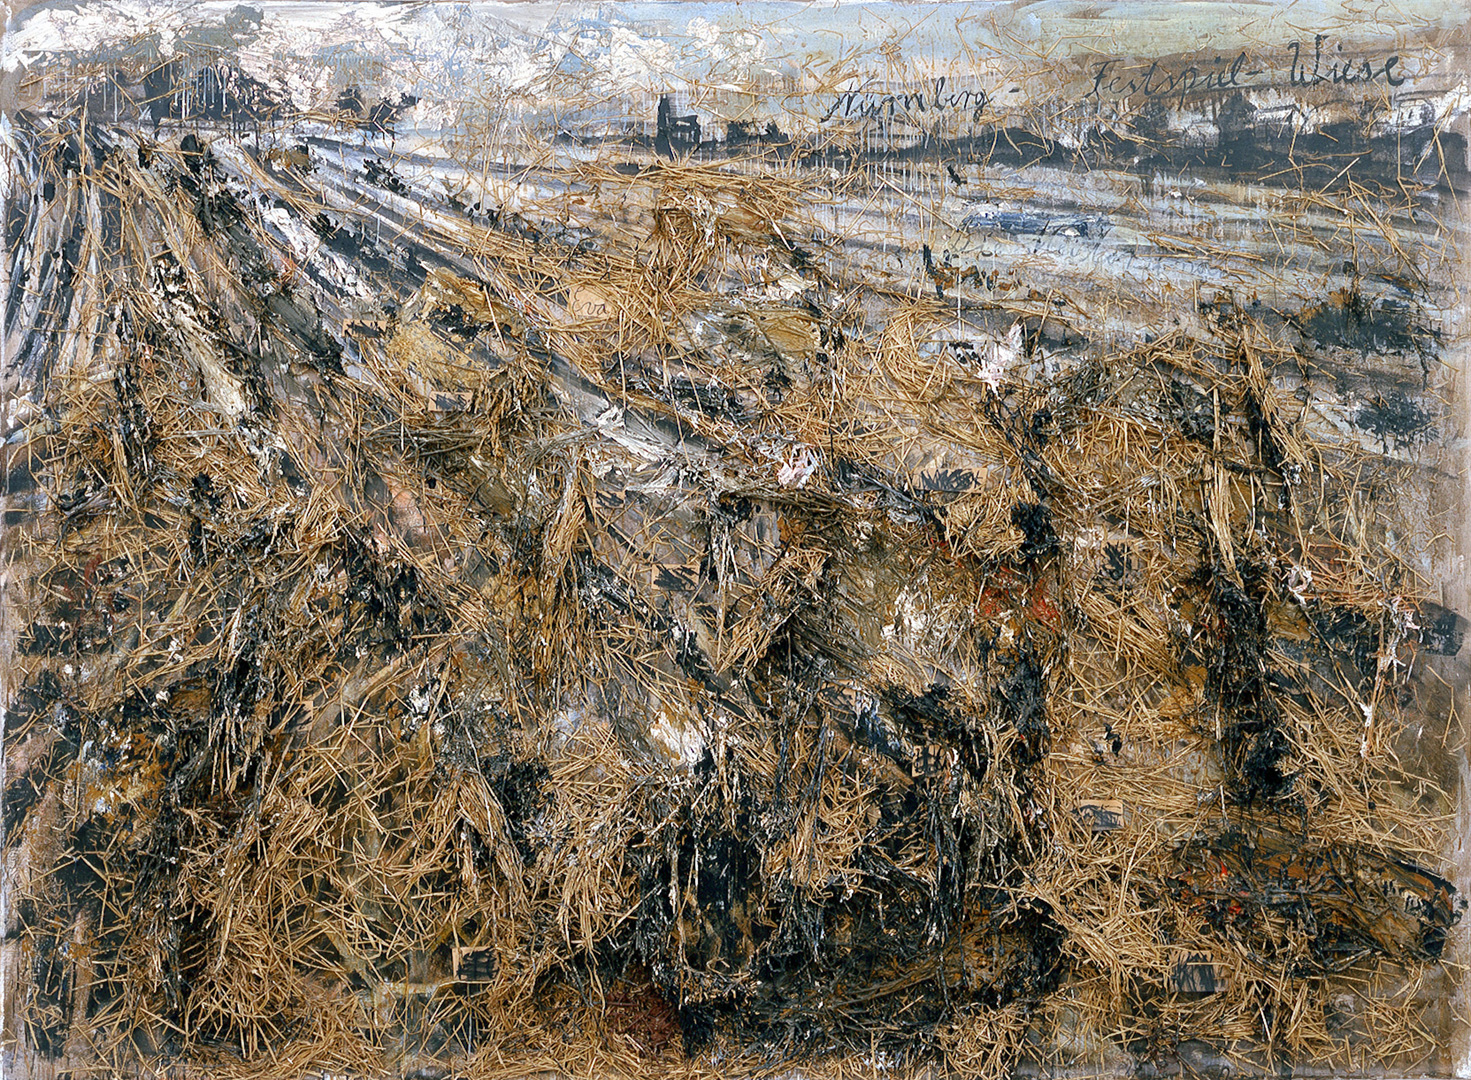 Anselm Kiefer - Nürnberg, 1982, oil, straw, and mixed media on canvas